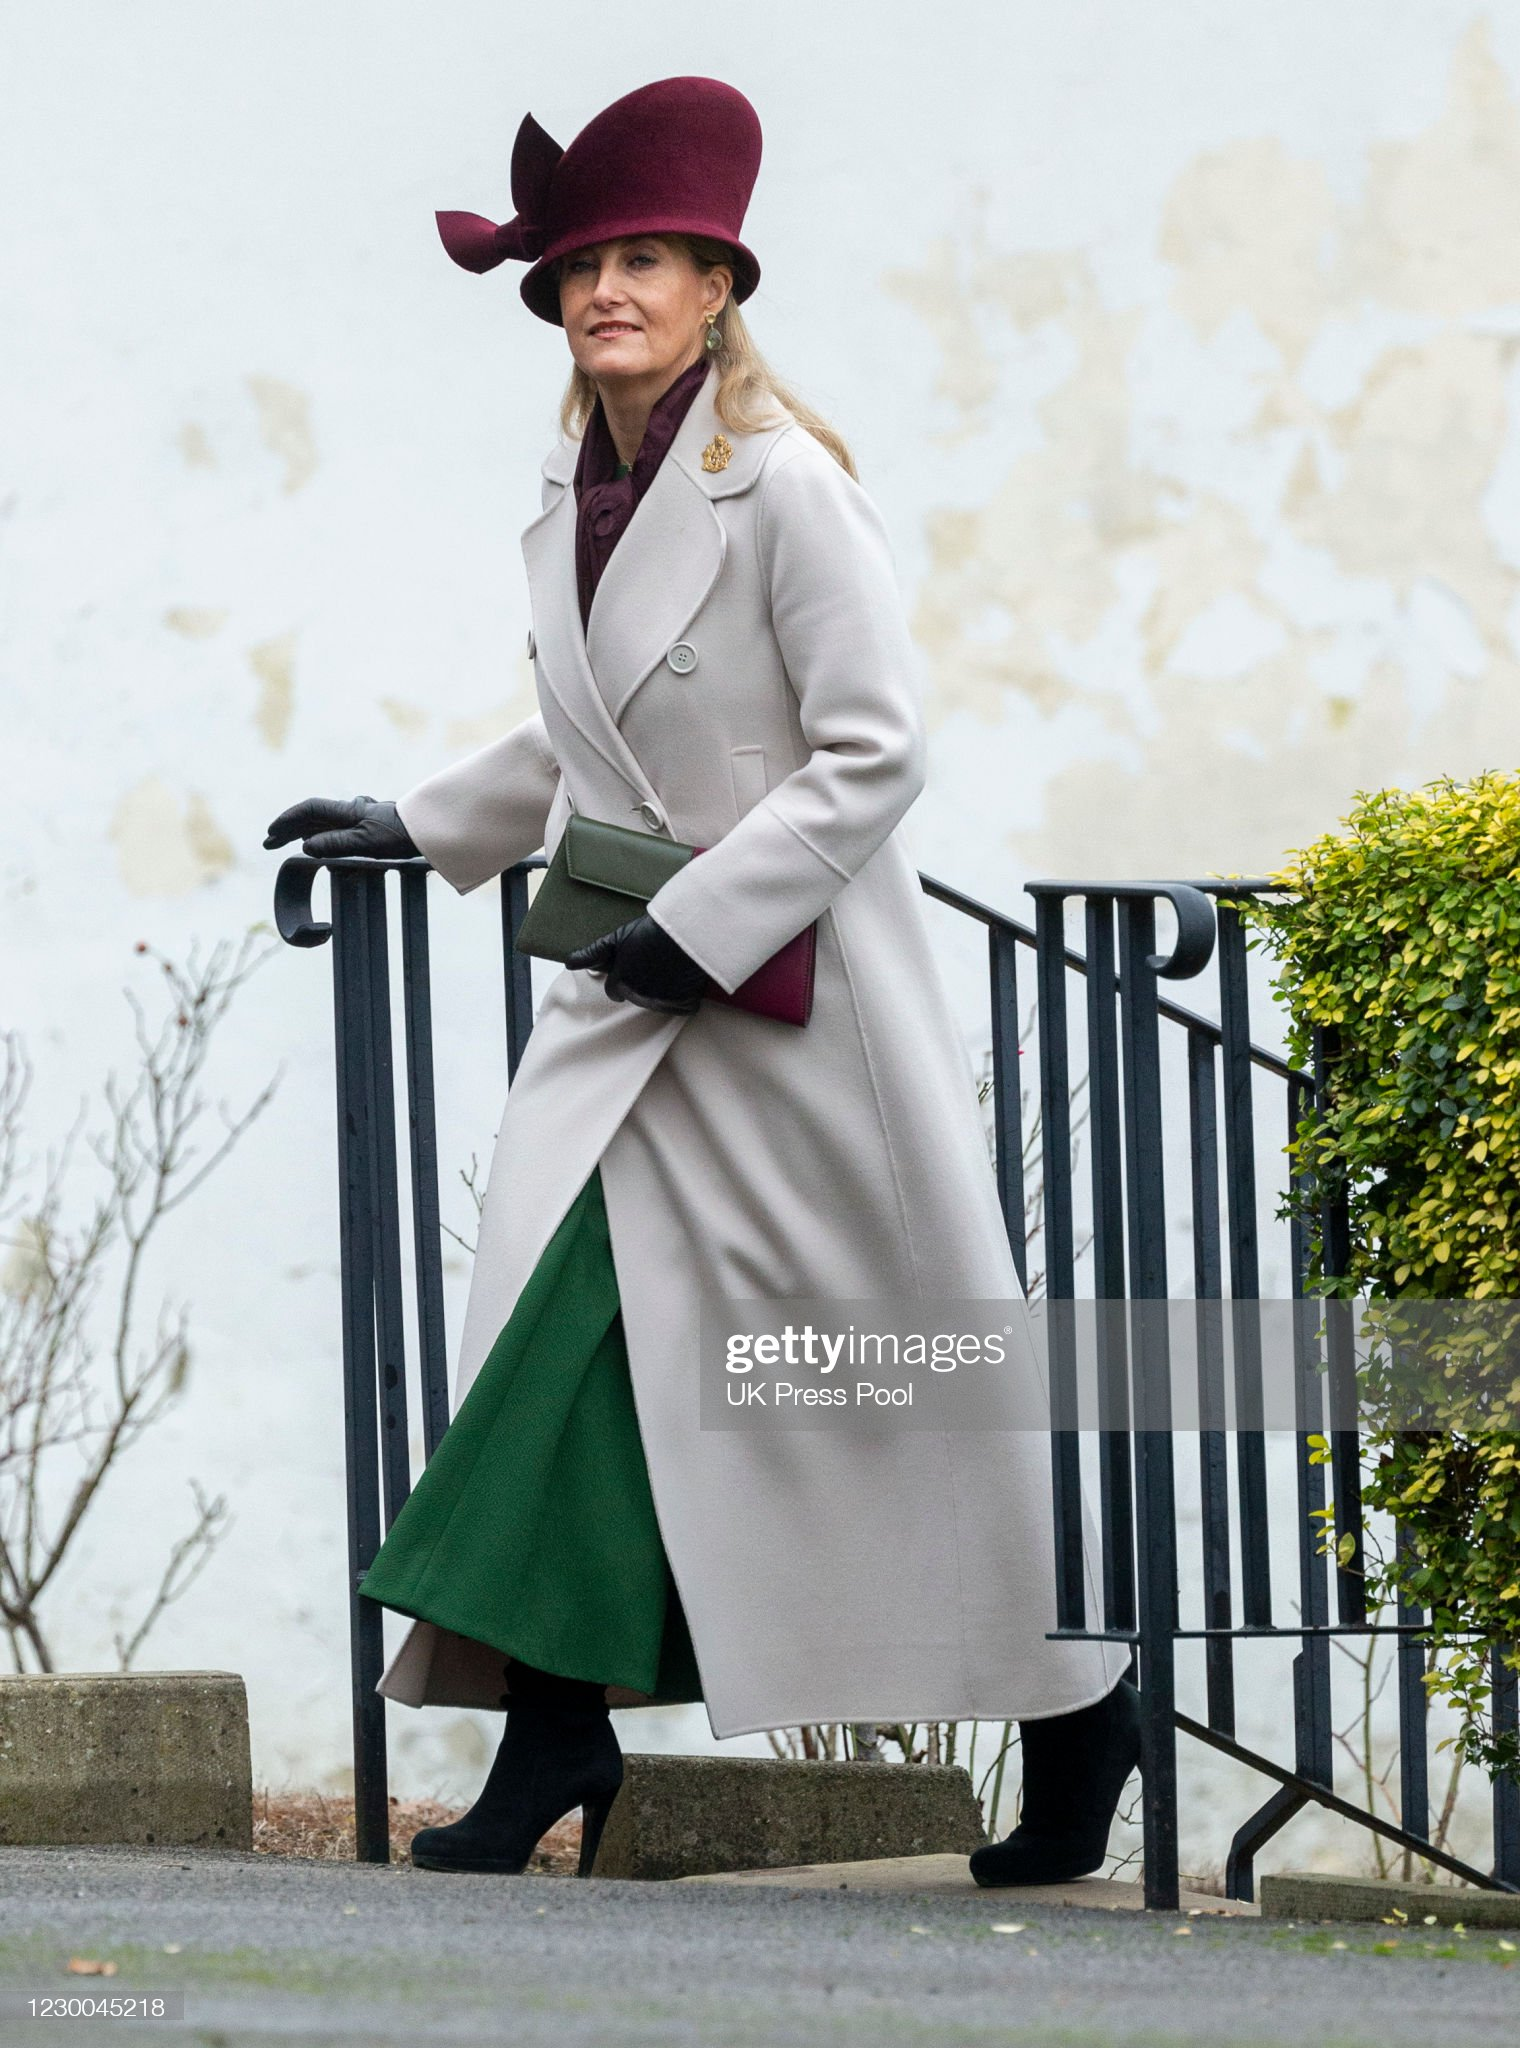 https://media.gettyimages.com/photos/sophie-countess-of-wessex-visits-the-corps-of-army-music-for-a-and-picture-id1230045218?s=2048x2048